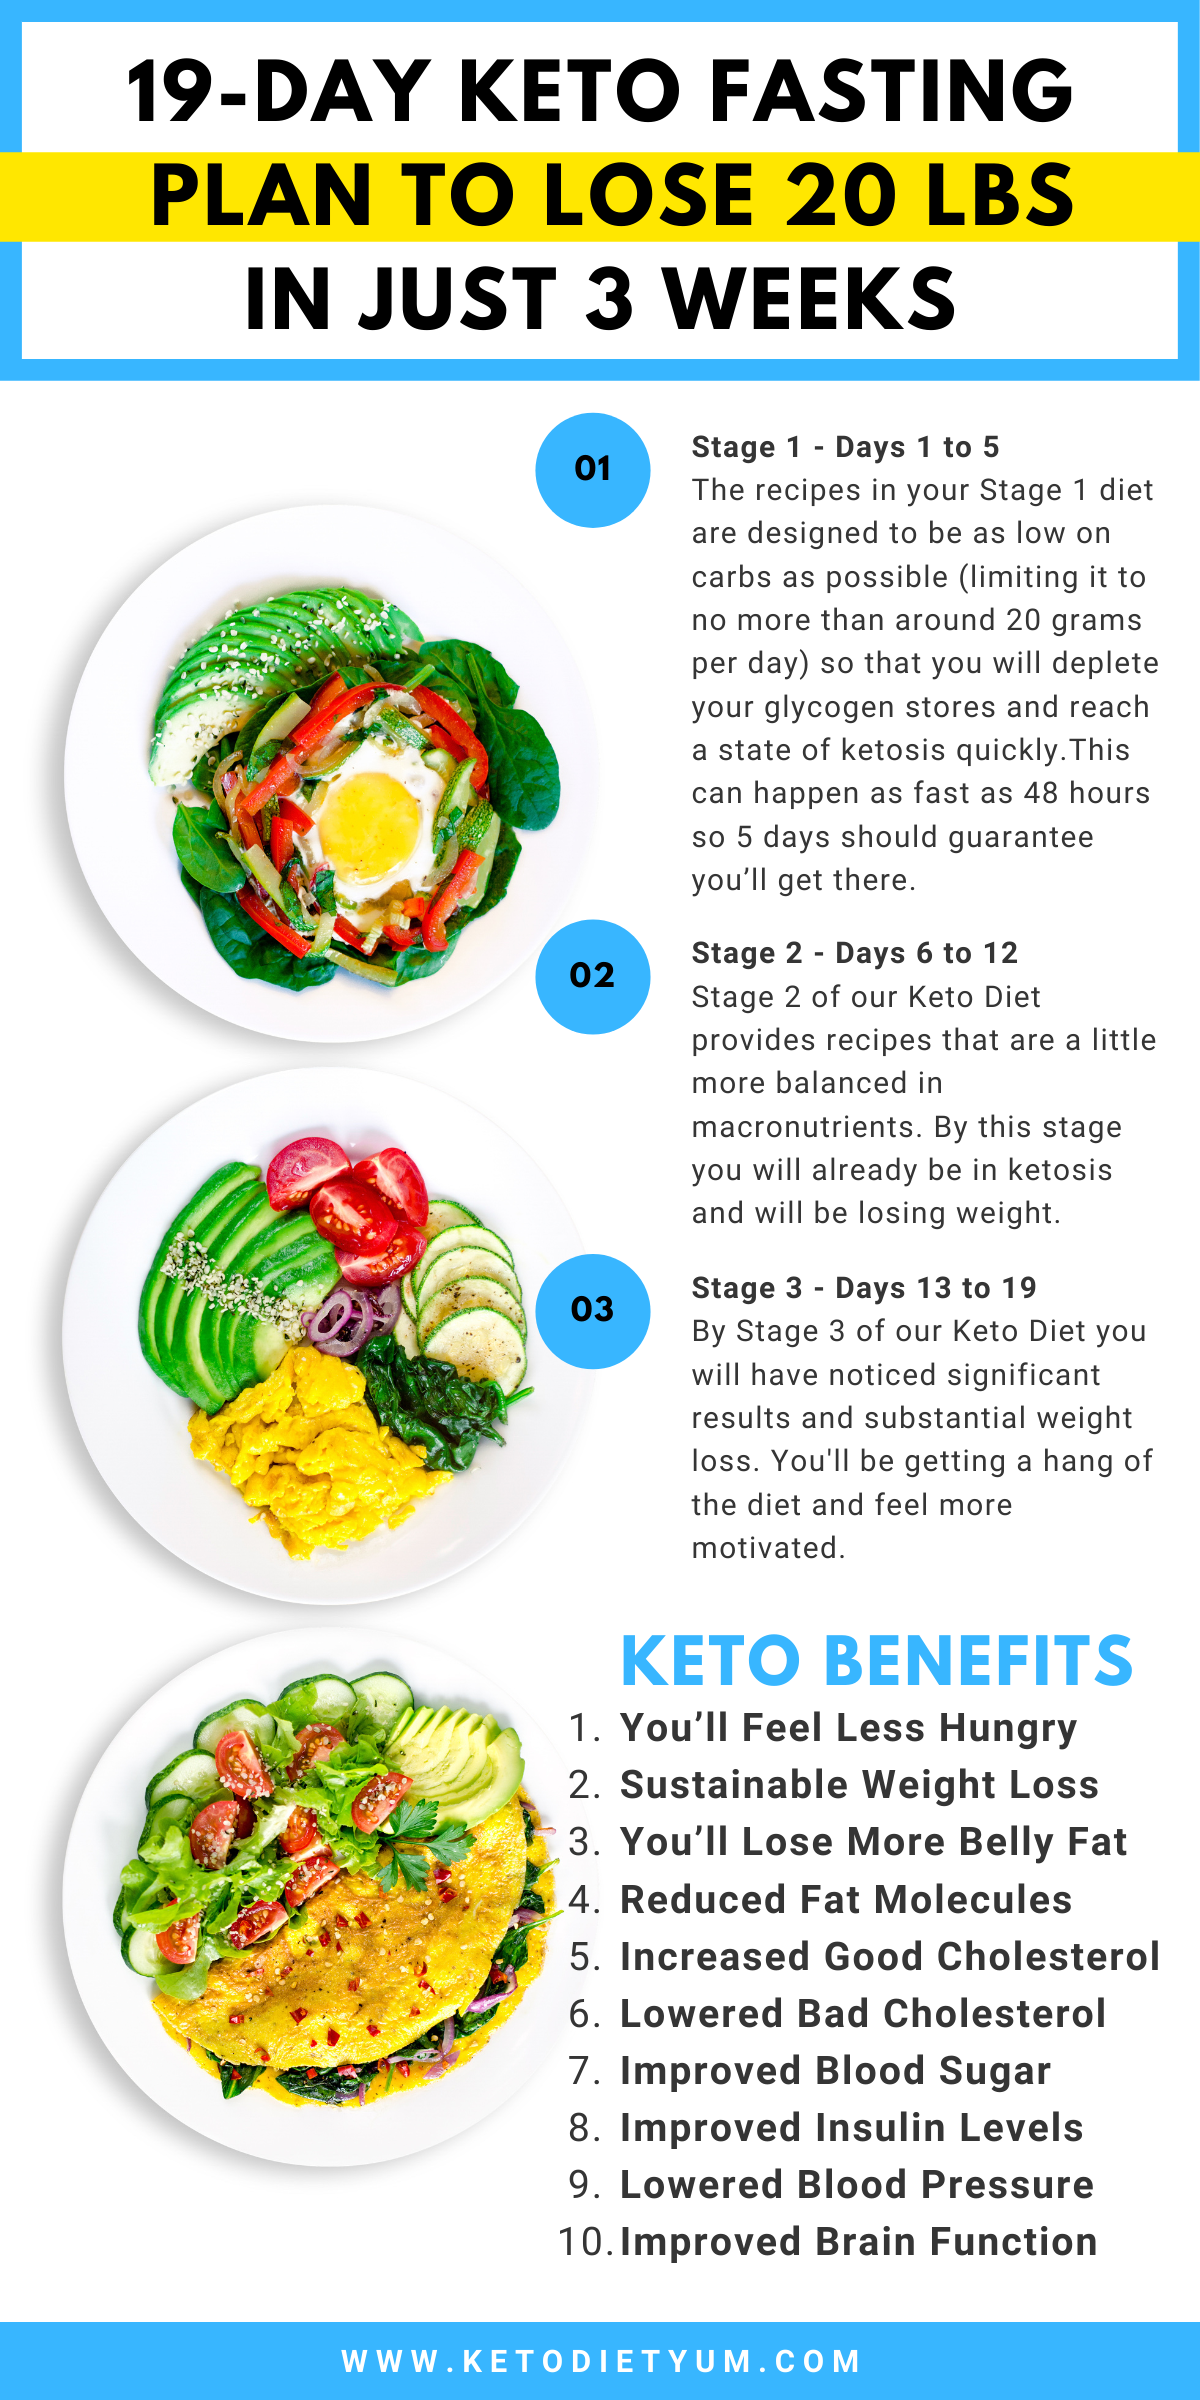 keto diet fasting 3 days